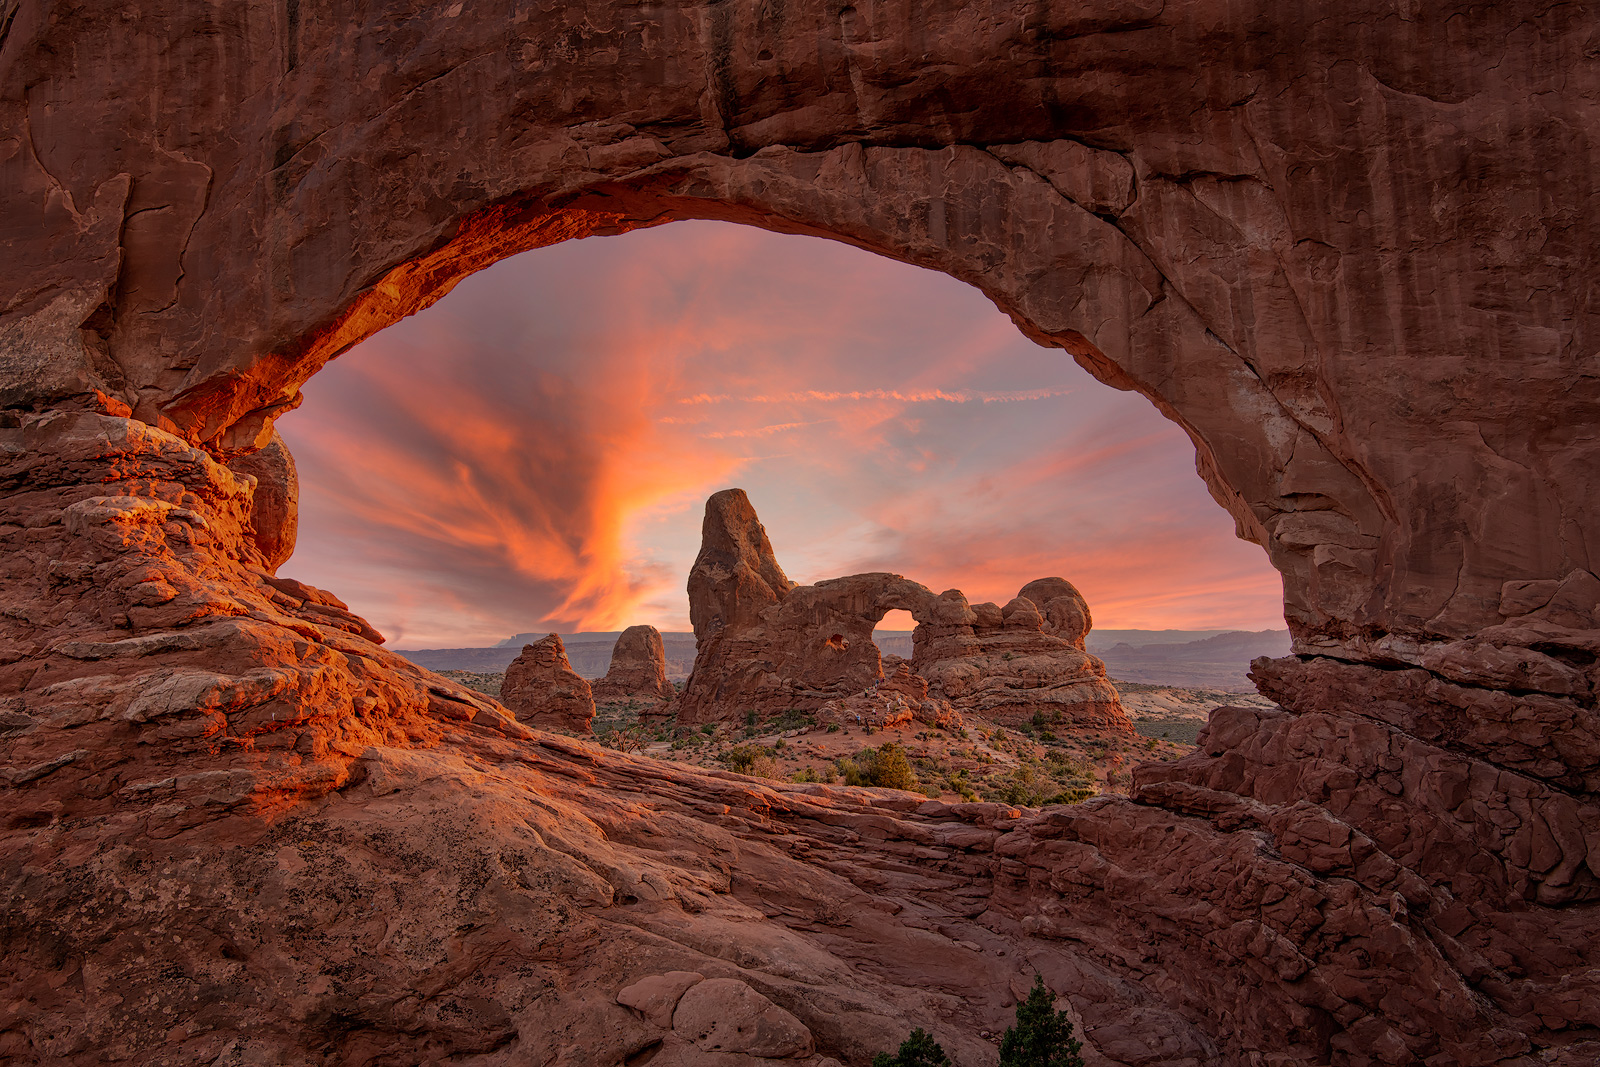 arches national park, arches, mesa arch, delicate arch, north window arch, corona arch, wilson arch, astrophotography, landscape...